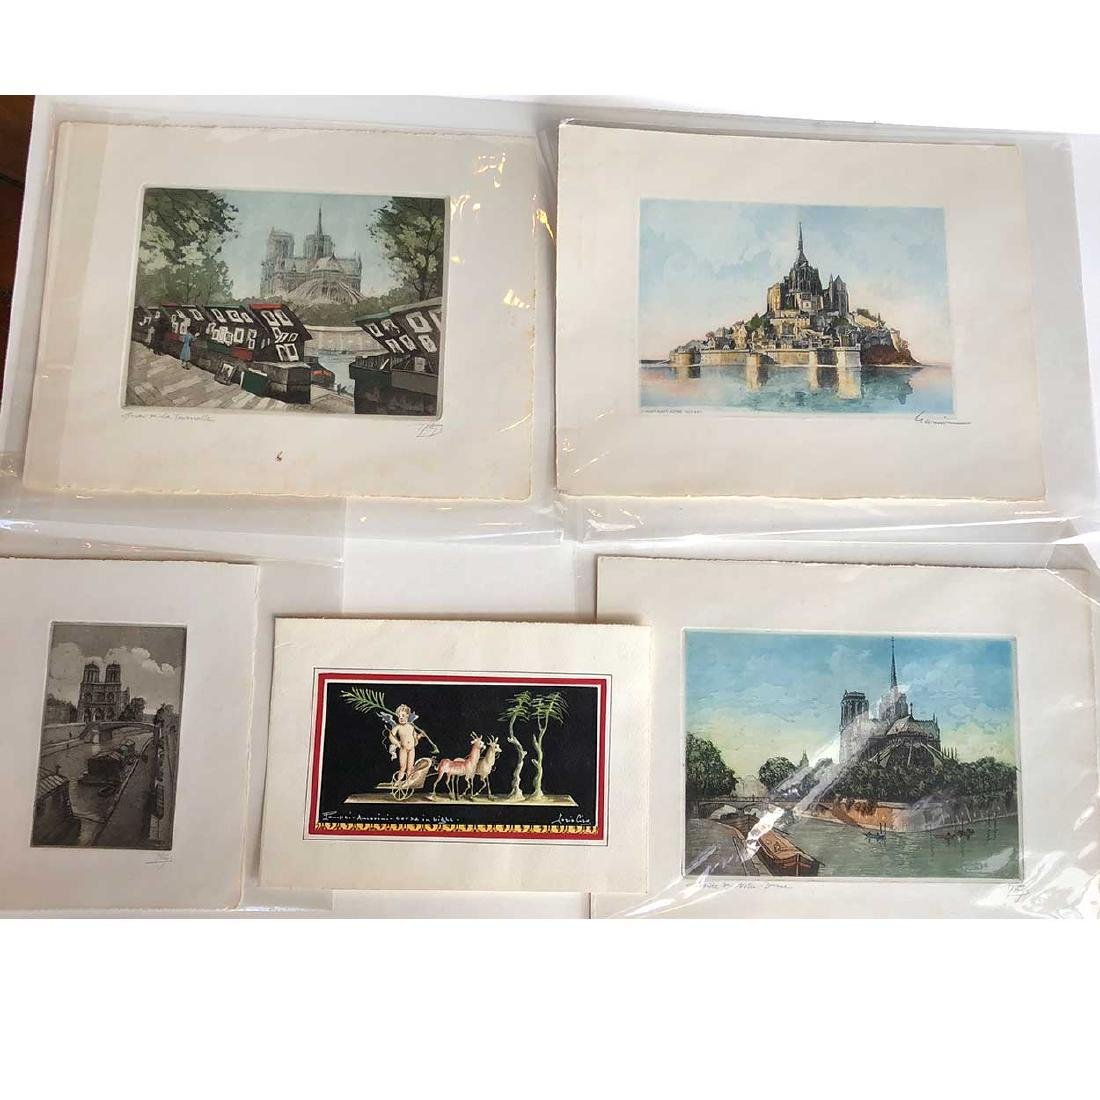 5 Signed Vintage Hand Colored Etchings